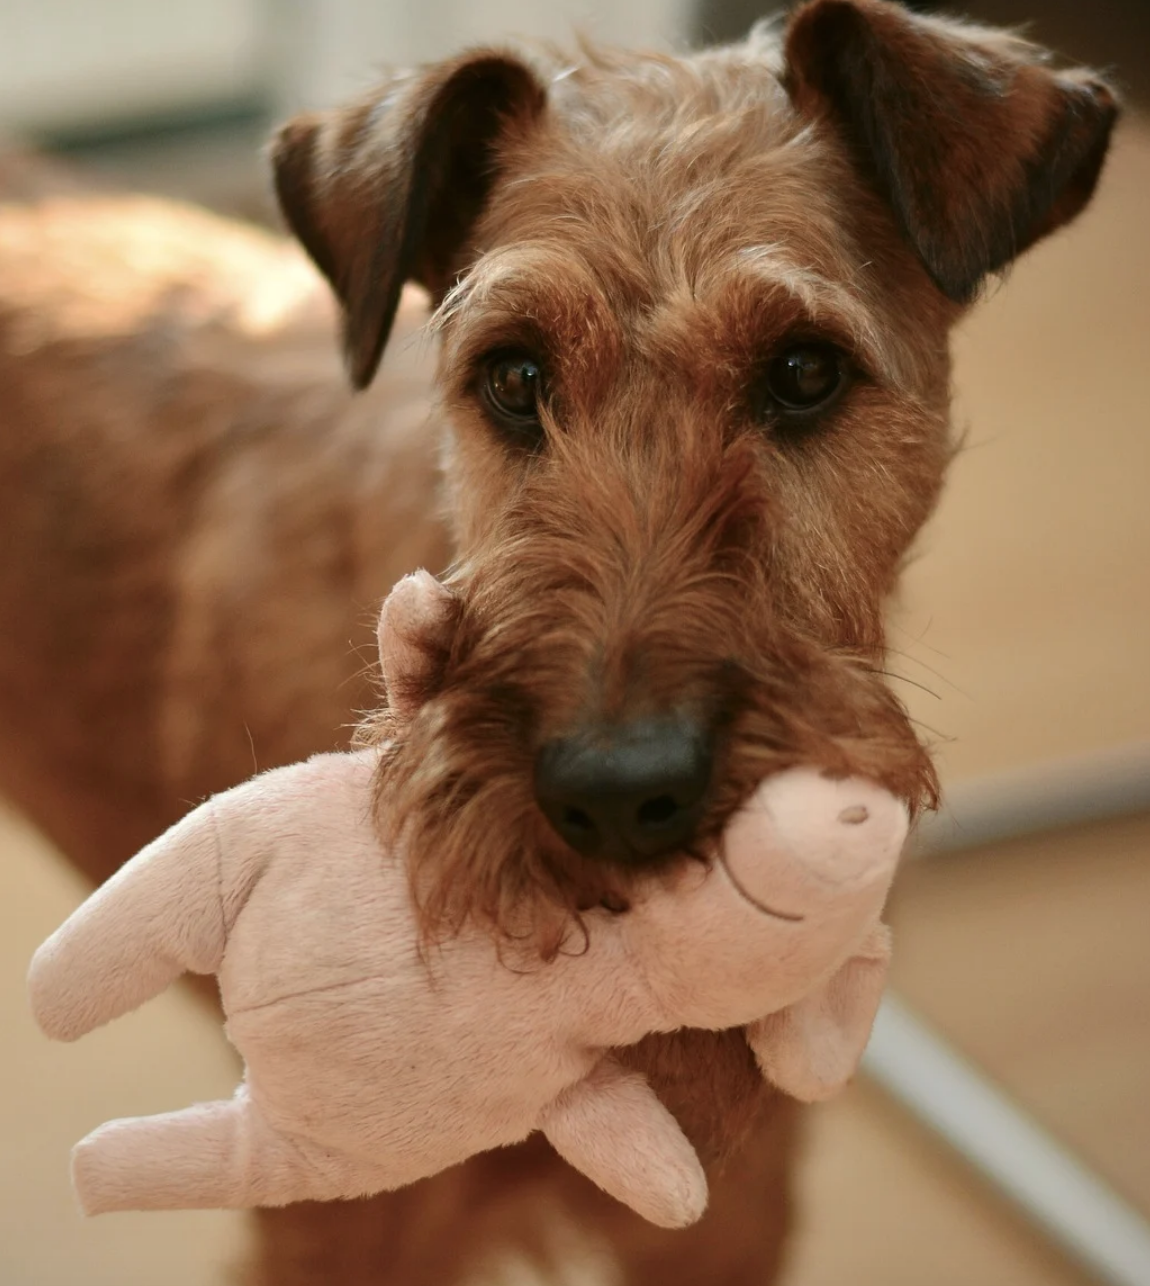 Dog holding toy in mouth